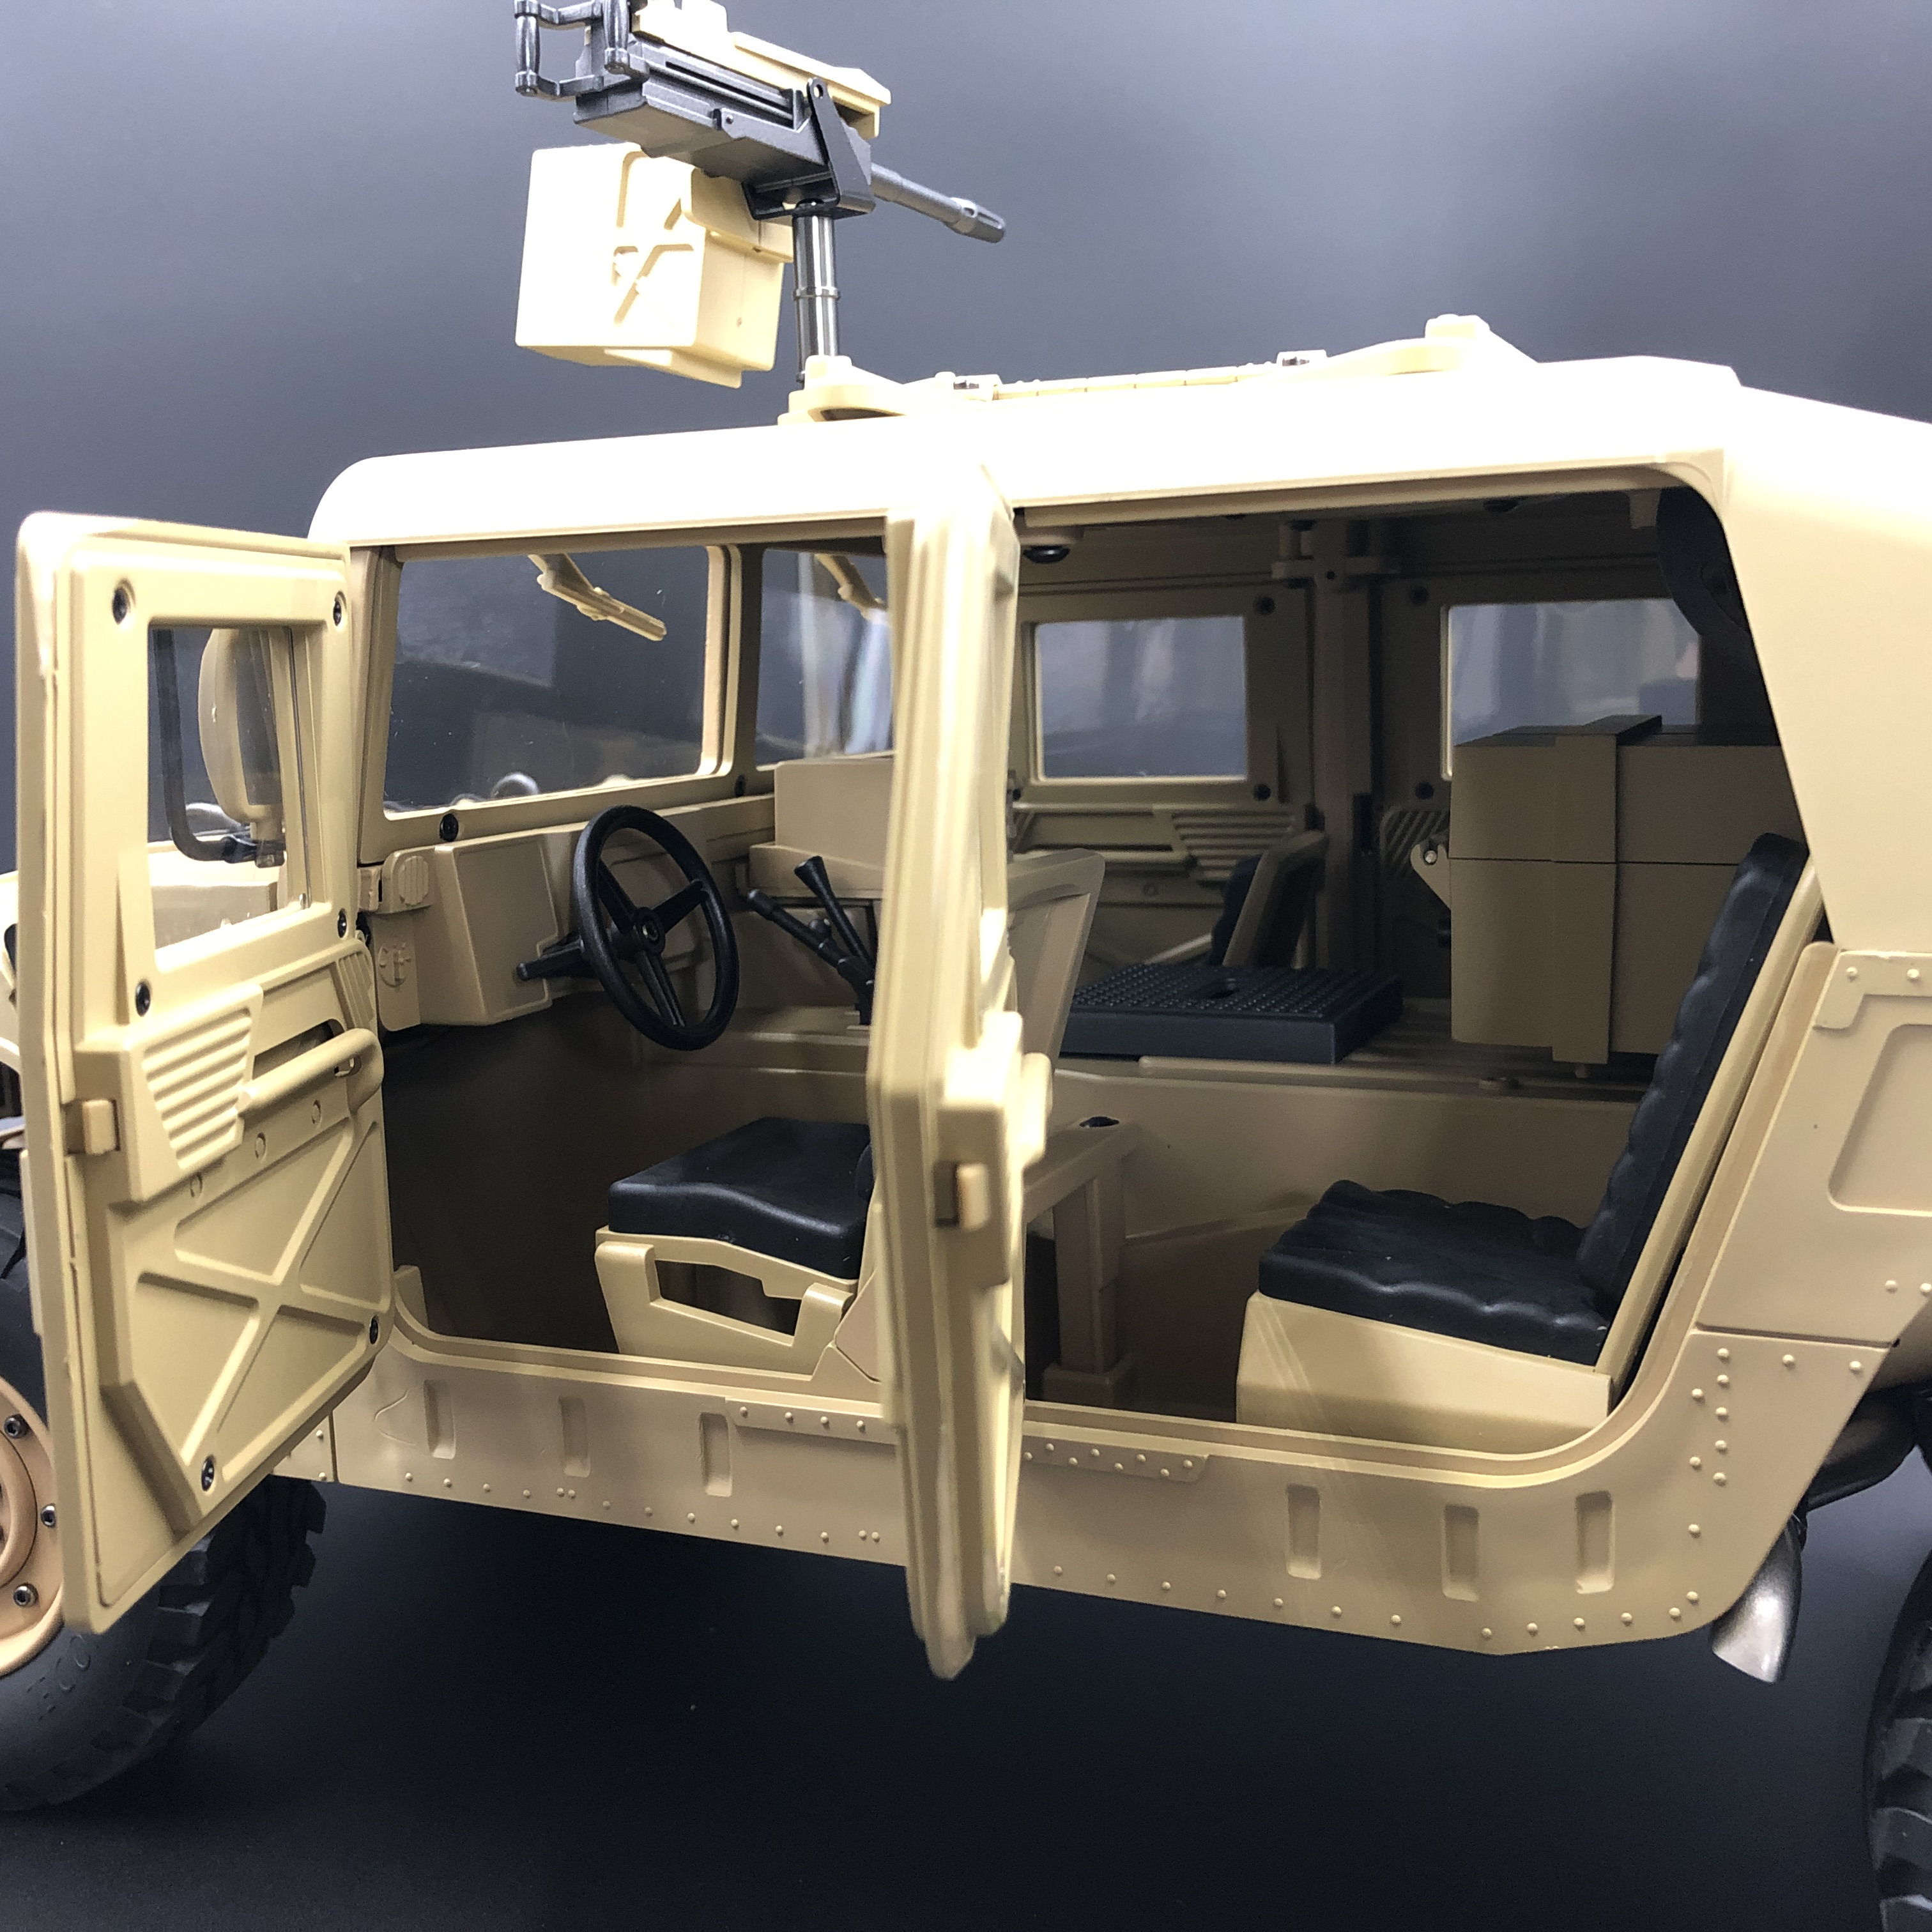 Image 5 - u.s.4X4MILITARY VEHICLE M1025 Humvee 1/10 rc Metal Chassis Off road vehicle car HG P408 Upgraded Light Sound FunctionRC Cars   -